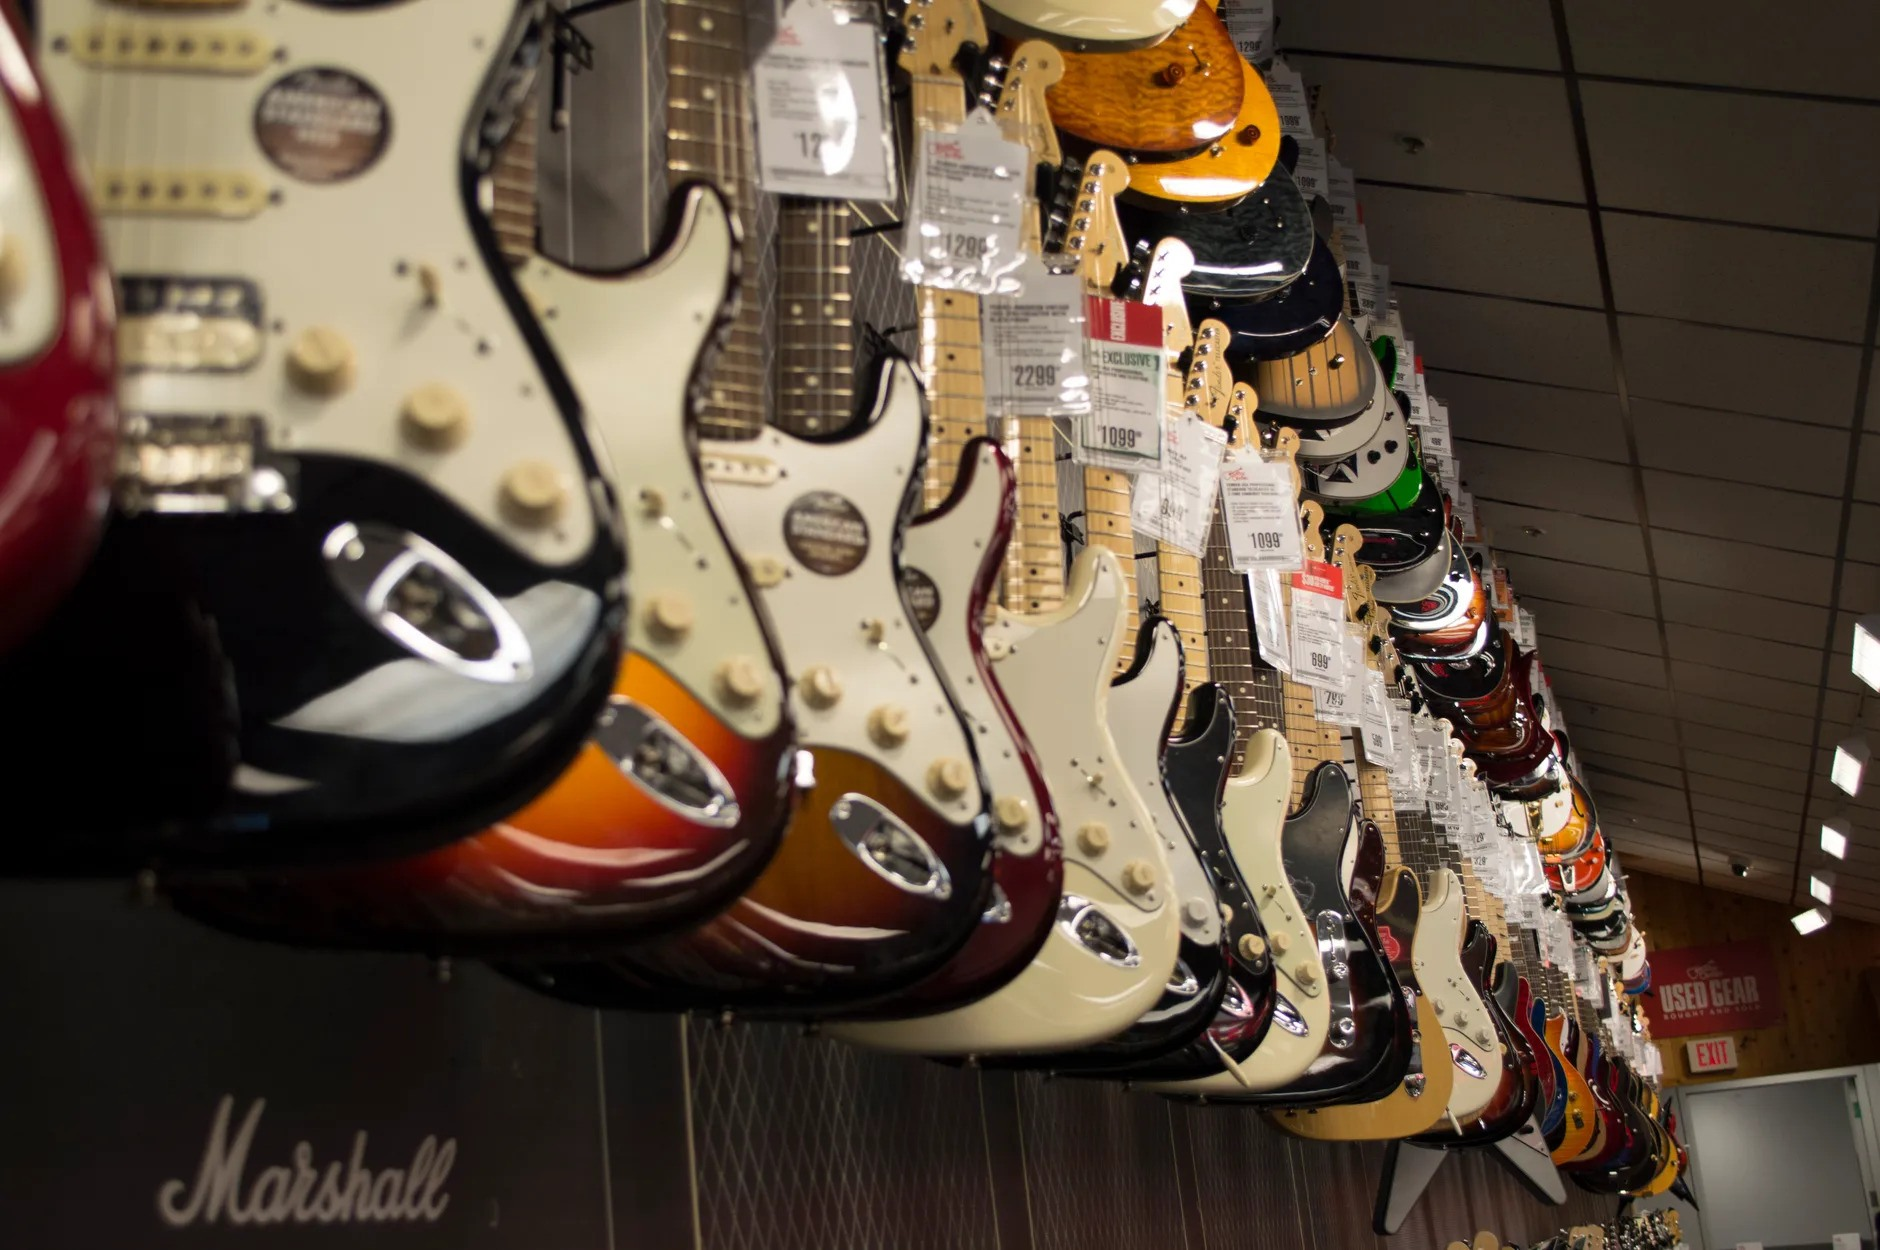 guitars hanging guitar store